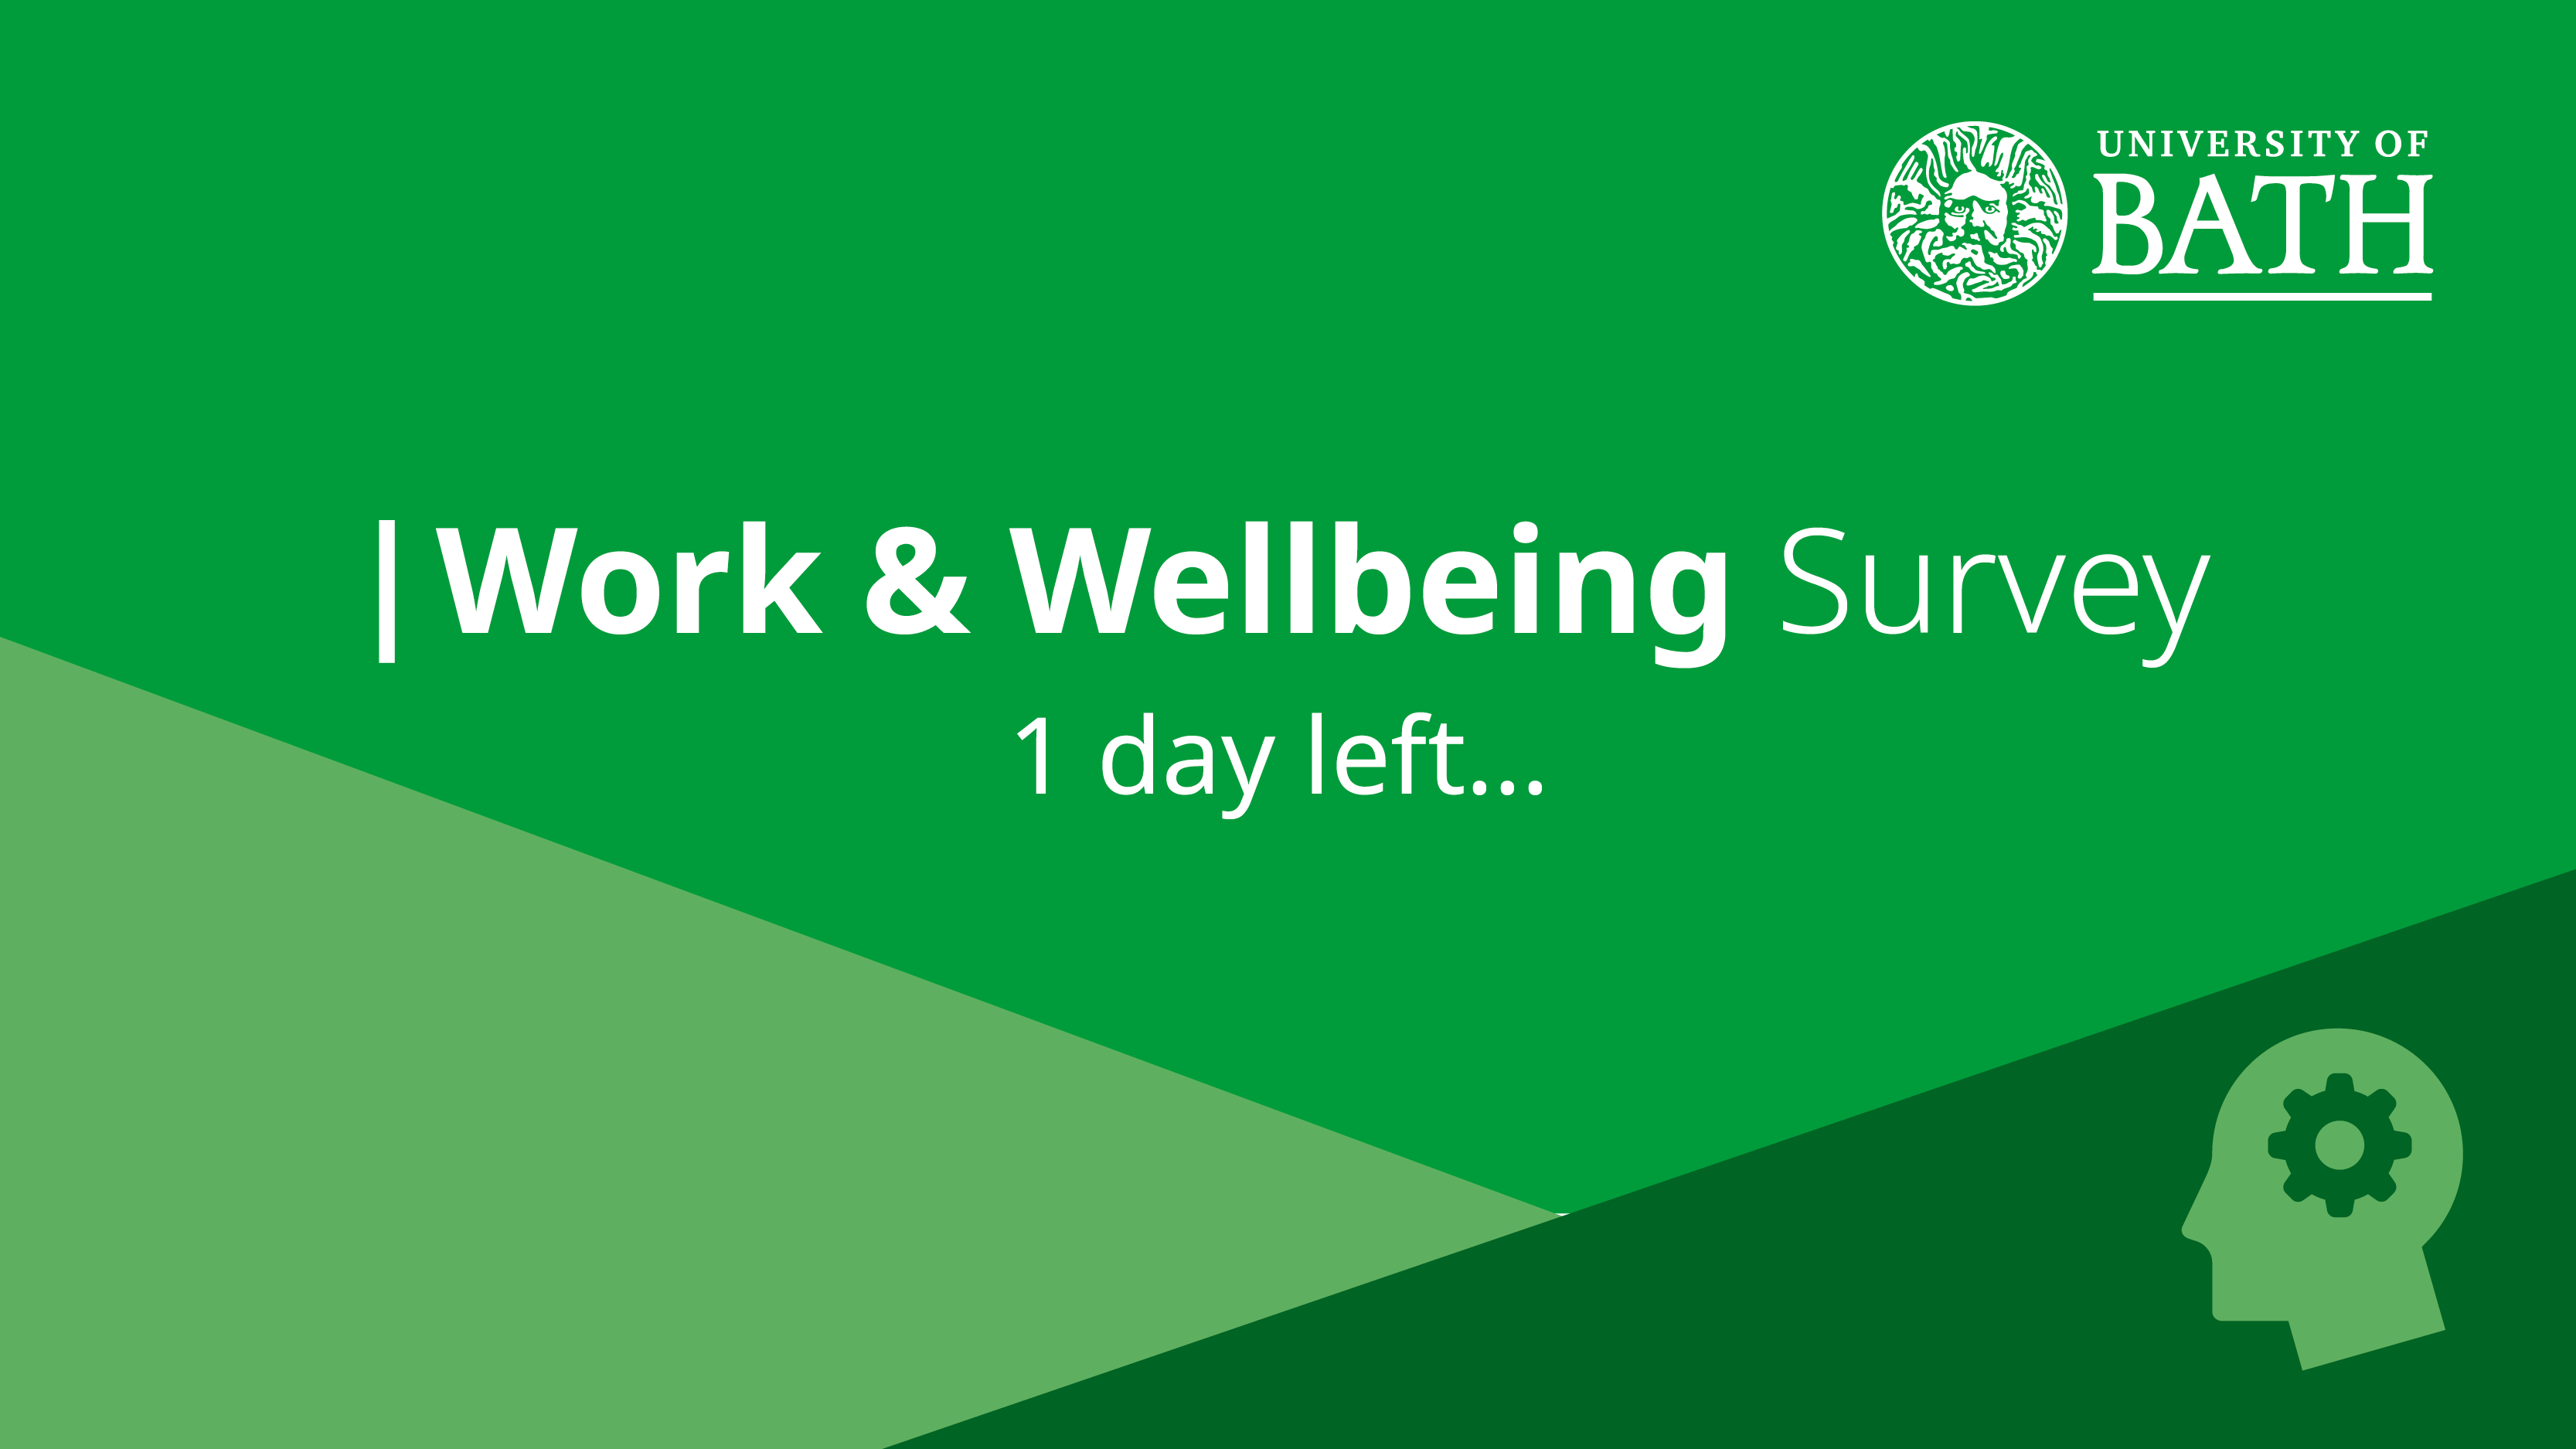 Work and Wellbeing survey